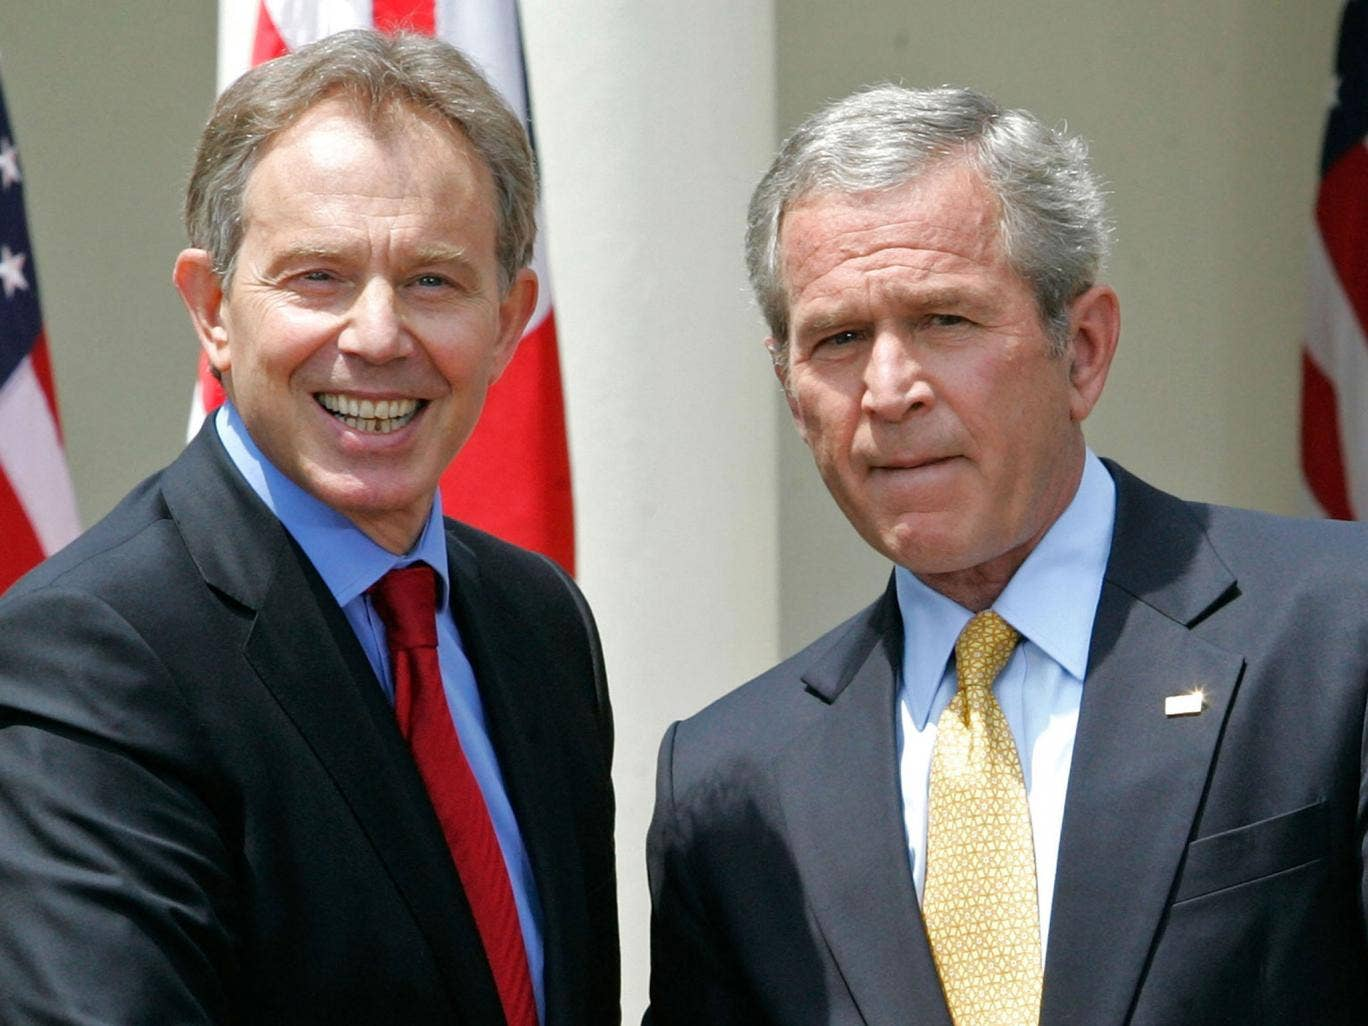 Tony Blair and US President George W Bush shake hands after a news conference in the Rose Garden of the White House in Washington, 2007